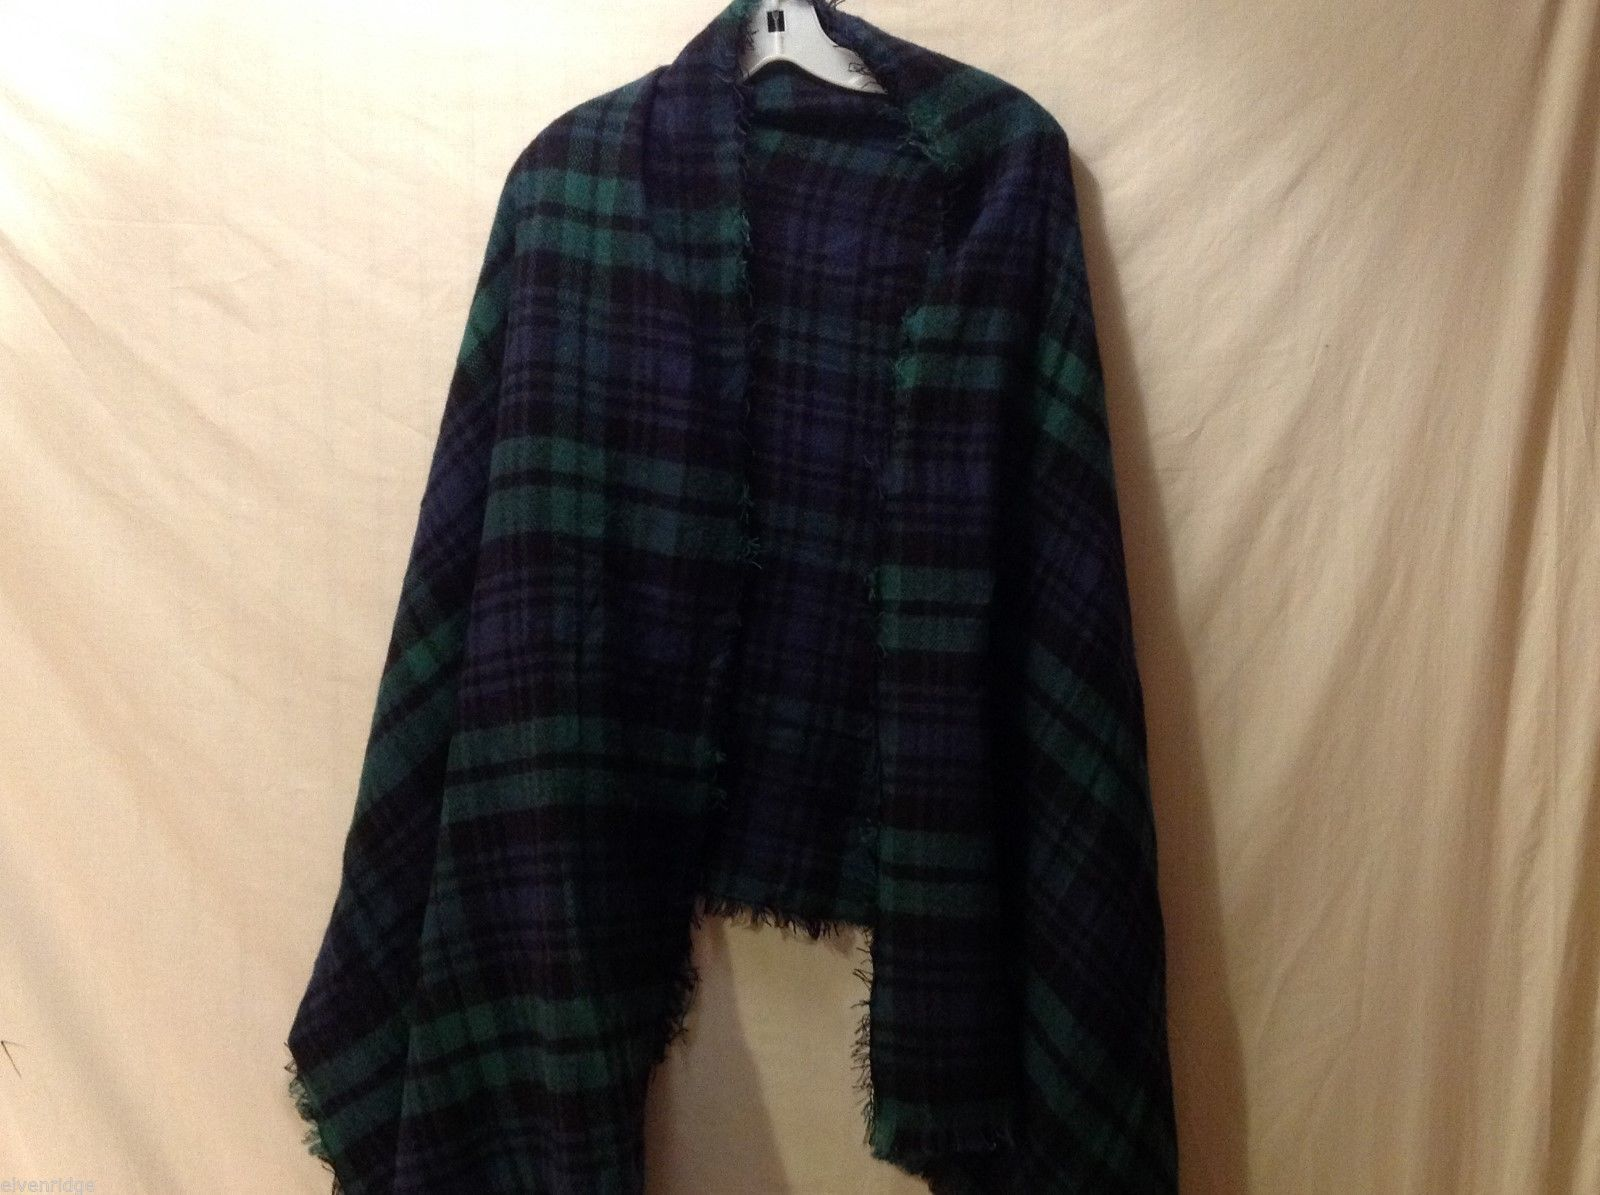 Merona Green, Black and Blue Plaid Scarf/Shawl, 82X32